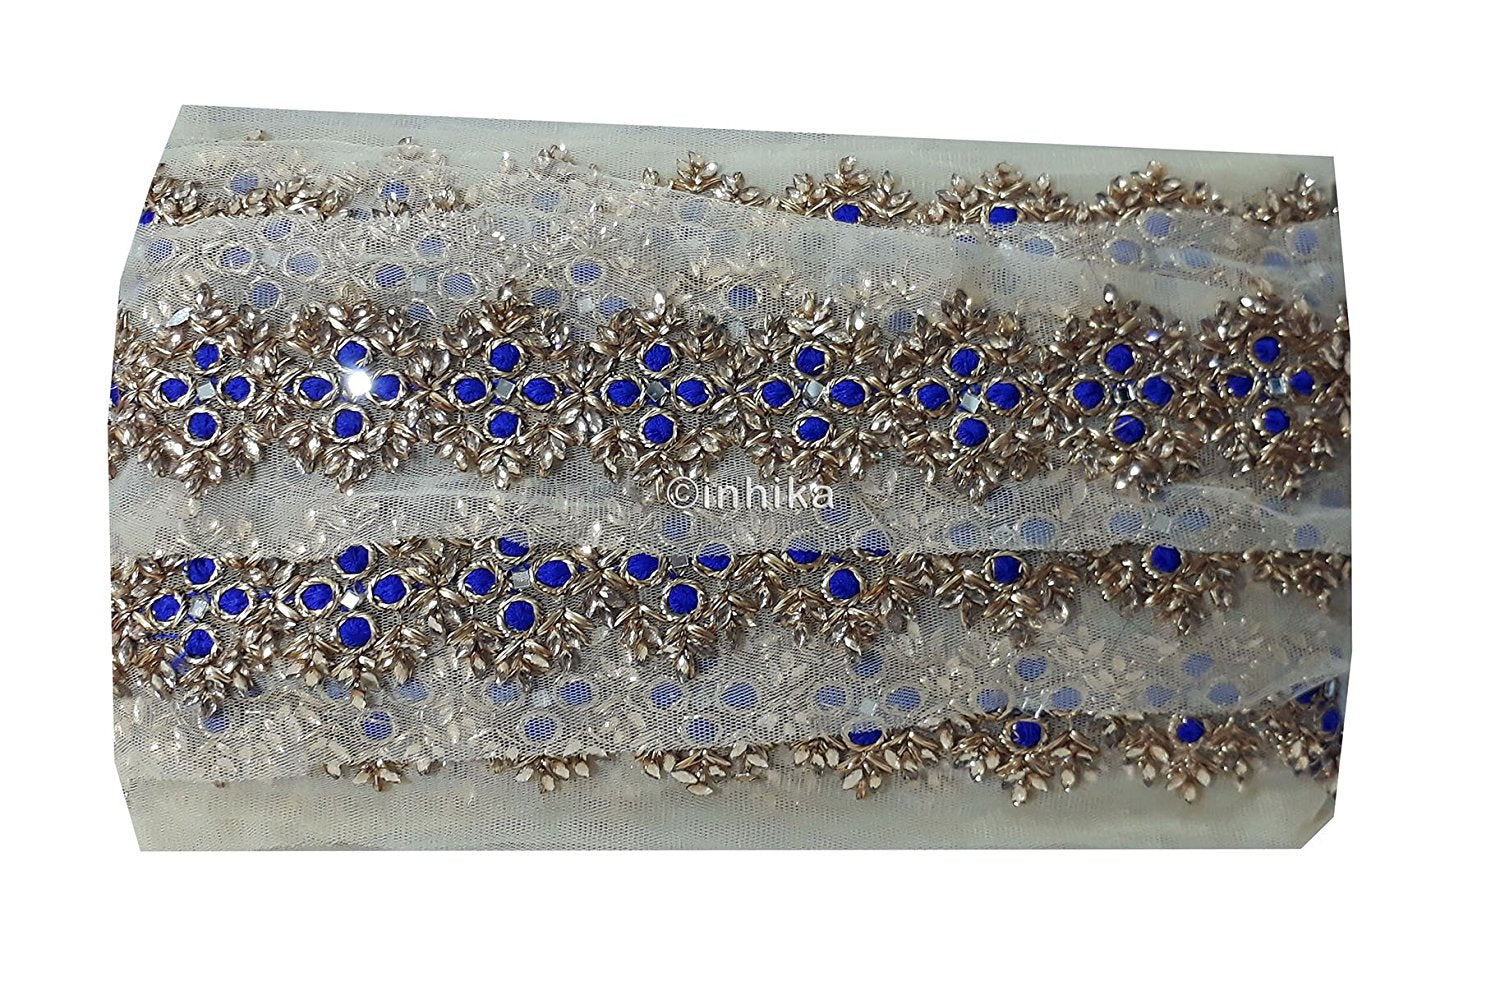 lace trim fabric sequin appliques and trims suppliers Blue, Embroidery, 3 Inch Wide material Net, Mesh, Tulle